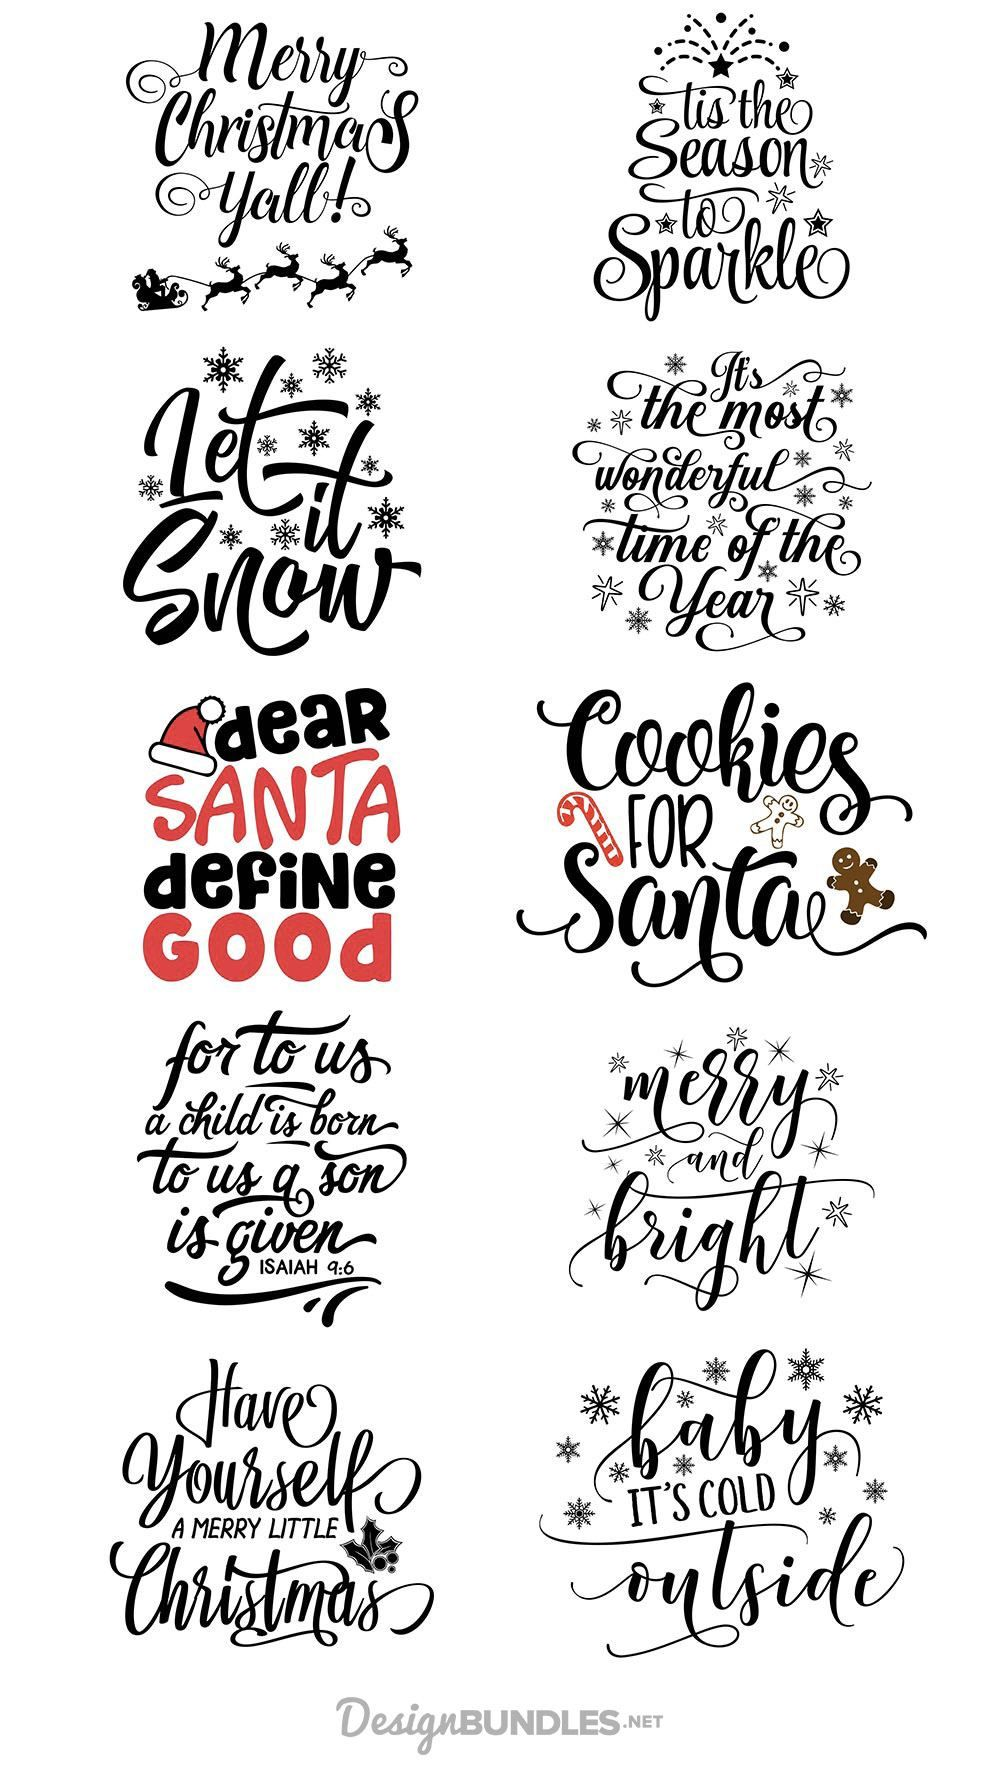 Download Free Christmas Quotes Design Bundle | Design quotes ...